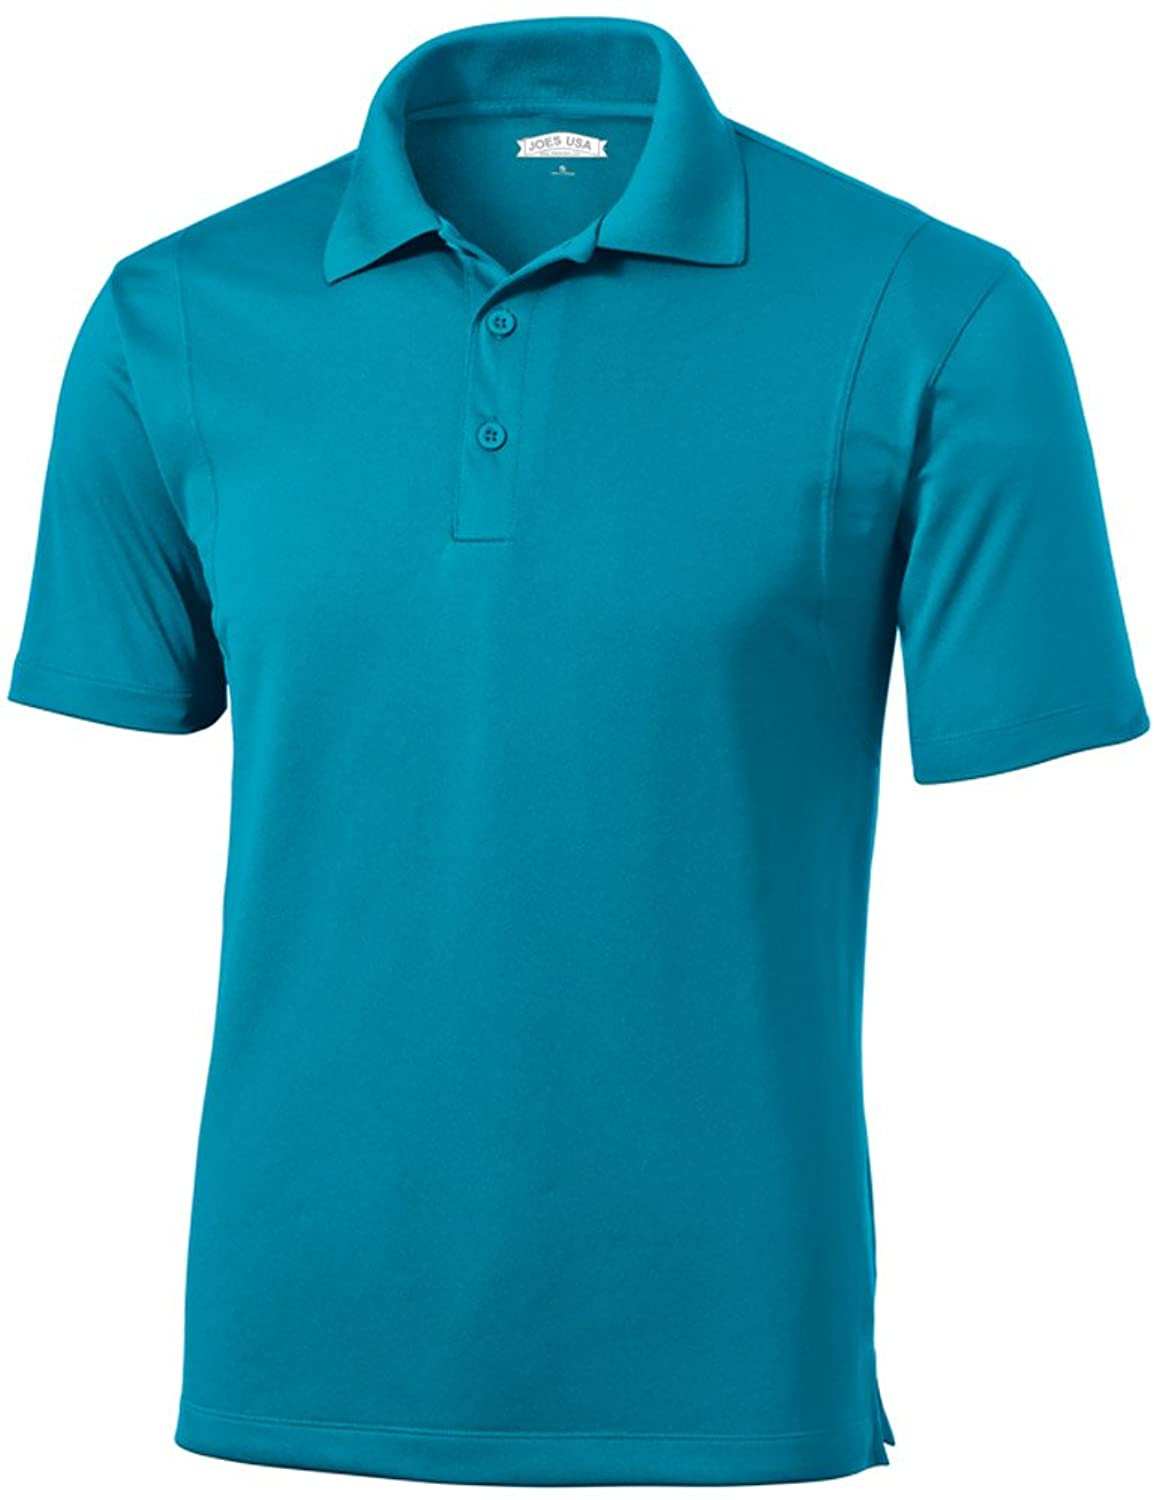 08370288 Online Cheap wholesale Joes USA Mens Moisture Wicking Micropique Golf Polos  in Regular, Big & Tall Active Shirts & Tees Suppliers